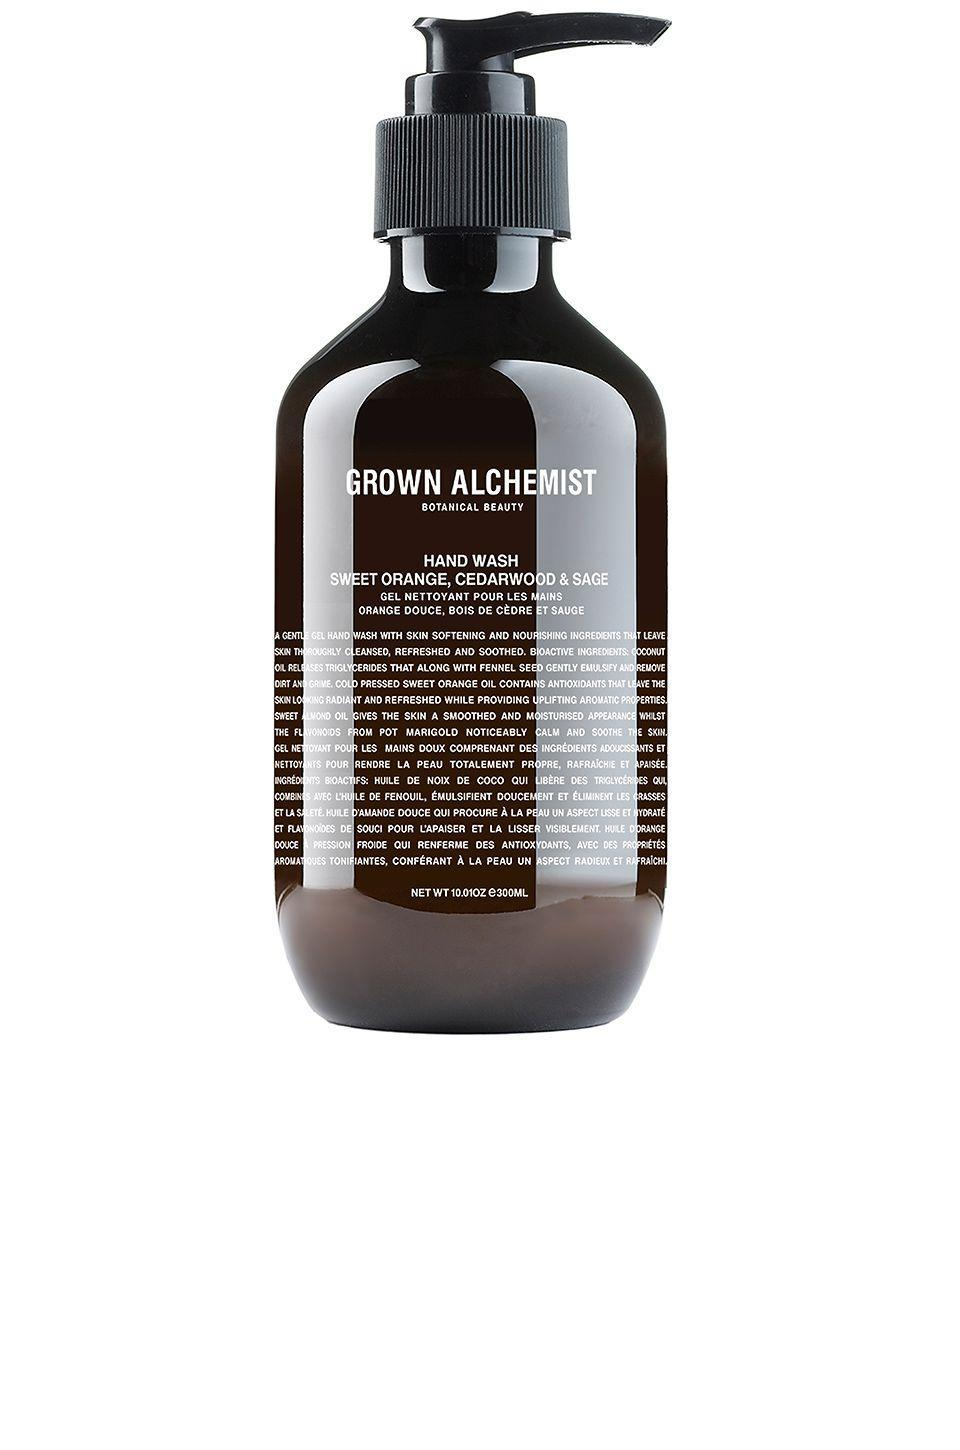 """<p><strong>Grown Alchemist Hand Wash in Sweet Orange, Cedarwood & Sage</strong></p><p>revolve.com</p><p><strong>$37.00</strong></p><p><a href=""""https://go.redirectingat.com?id=74968X1596630&url=https%3A%2F%2Fwww.revolve.com%2Fgrown-alchemist-hand-wash-sweet-orange-cedarwood-sage%2Fdp%2FGRAL-UU14%2F%3Fd%3DWomens%26fbreq%3Del%252F%26product%3DGRAL-UU14%26bneEl%3Dfalse&sref=https%3A%2F%2Fwww.elle.com%2Fbeauty%2Fmakeup-skin-care%2Fg13968711%2Fbest-hand-soap%2F"""" rel=""""nofollow noopener"""" target=""""_blank"""" data-ylk=""""slk:Shop Now"""" class=""""link rapid-noclick-resp"""">Shop Now</a></p><p>Australian clean beauty brand Grown Alchemist's hand wash come in large apothecary pumps that last—and the fragrance blends are super uplifting. </p>"""